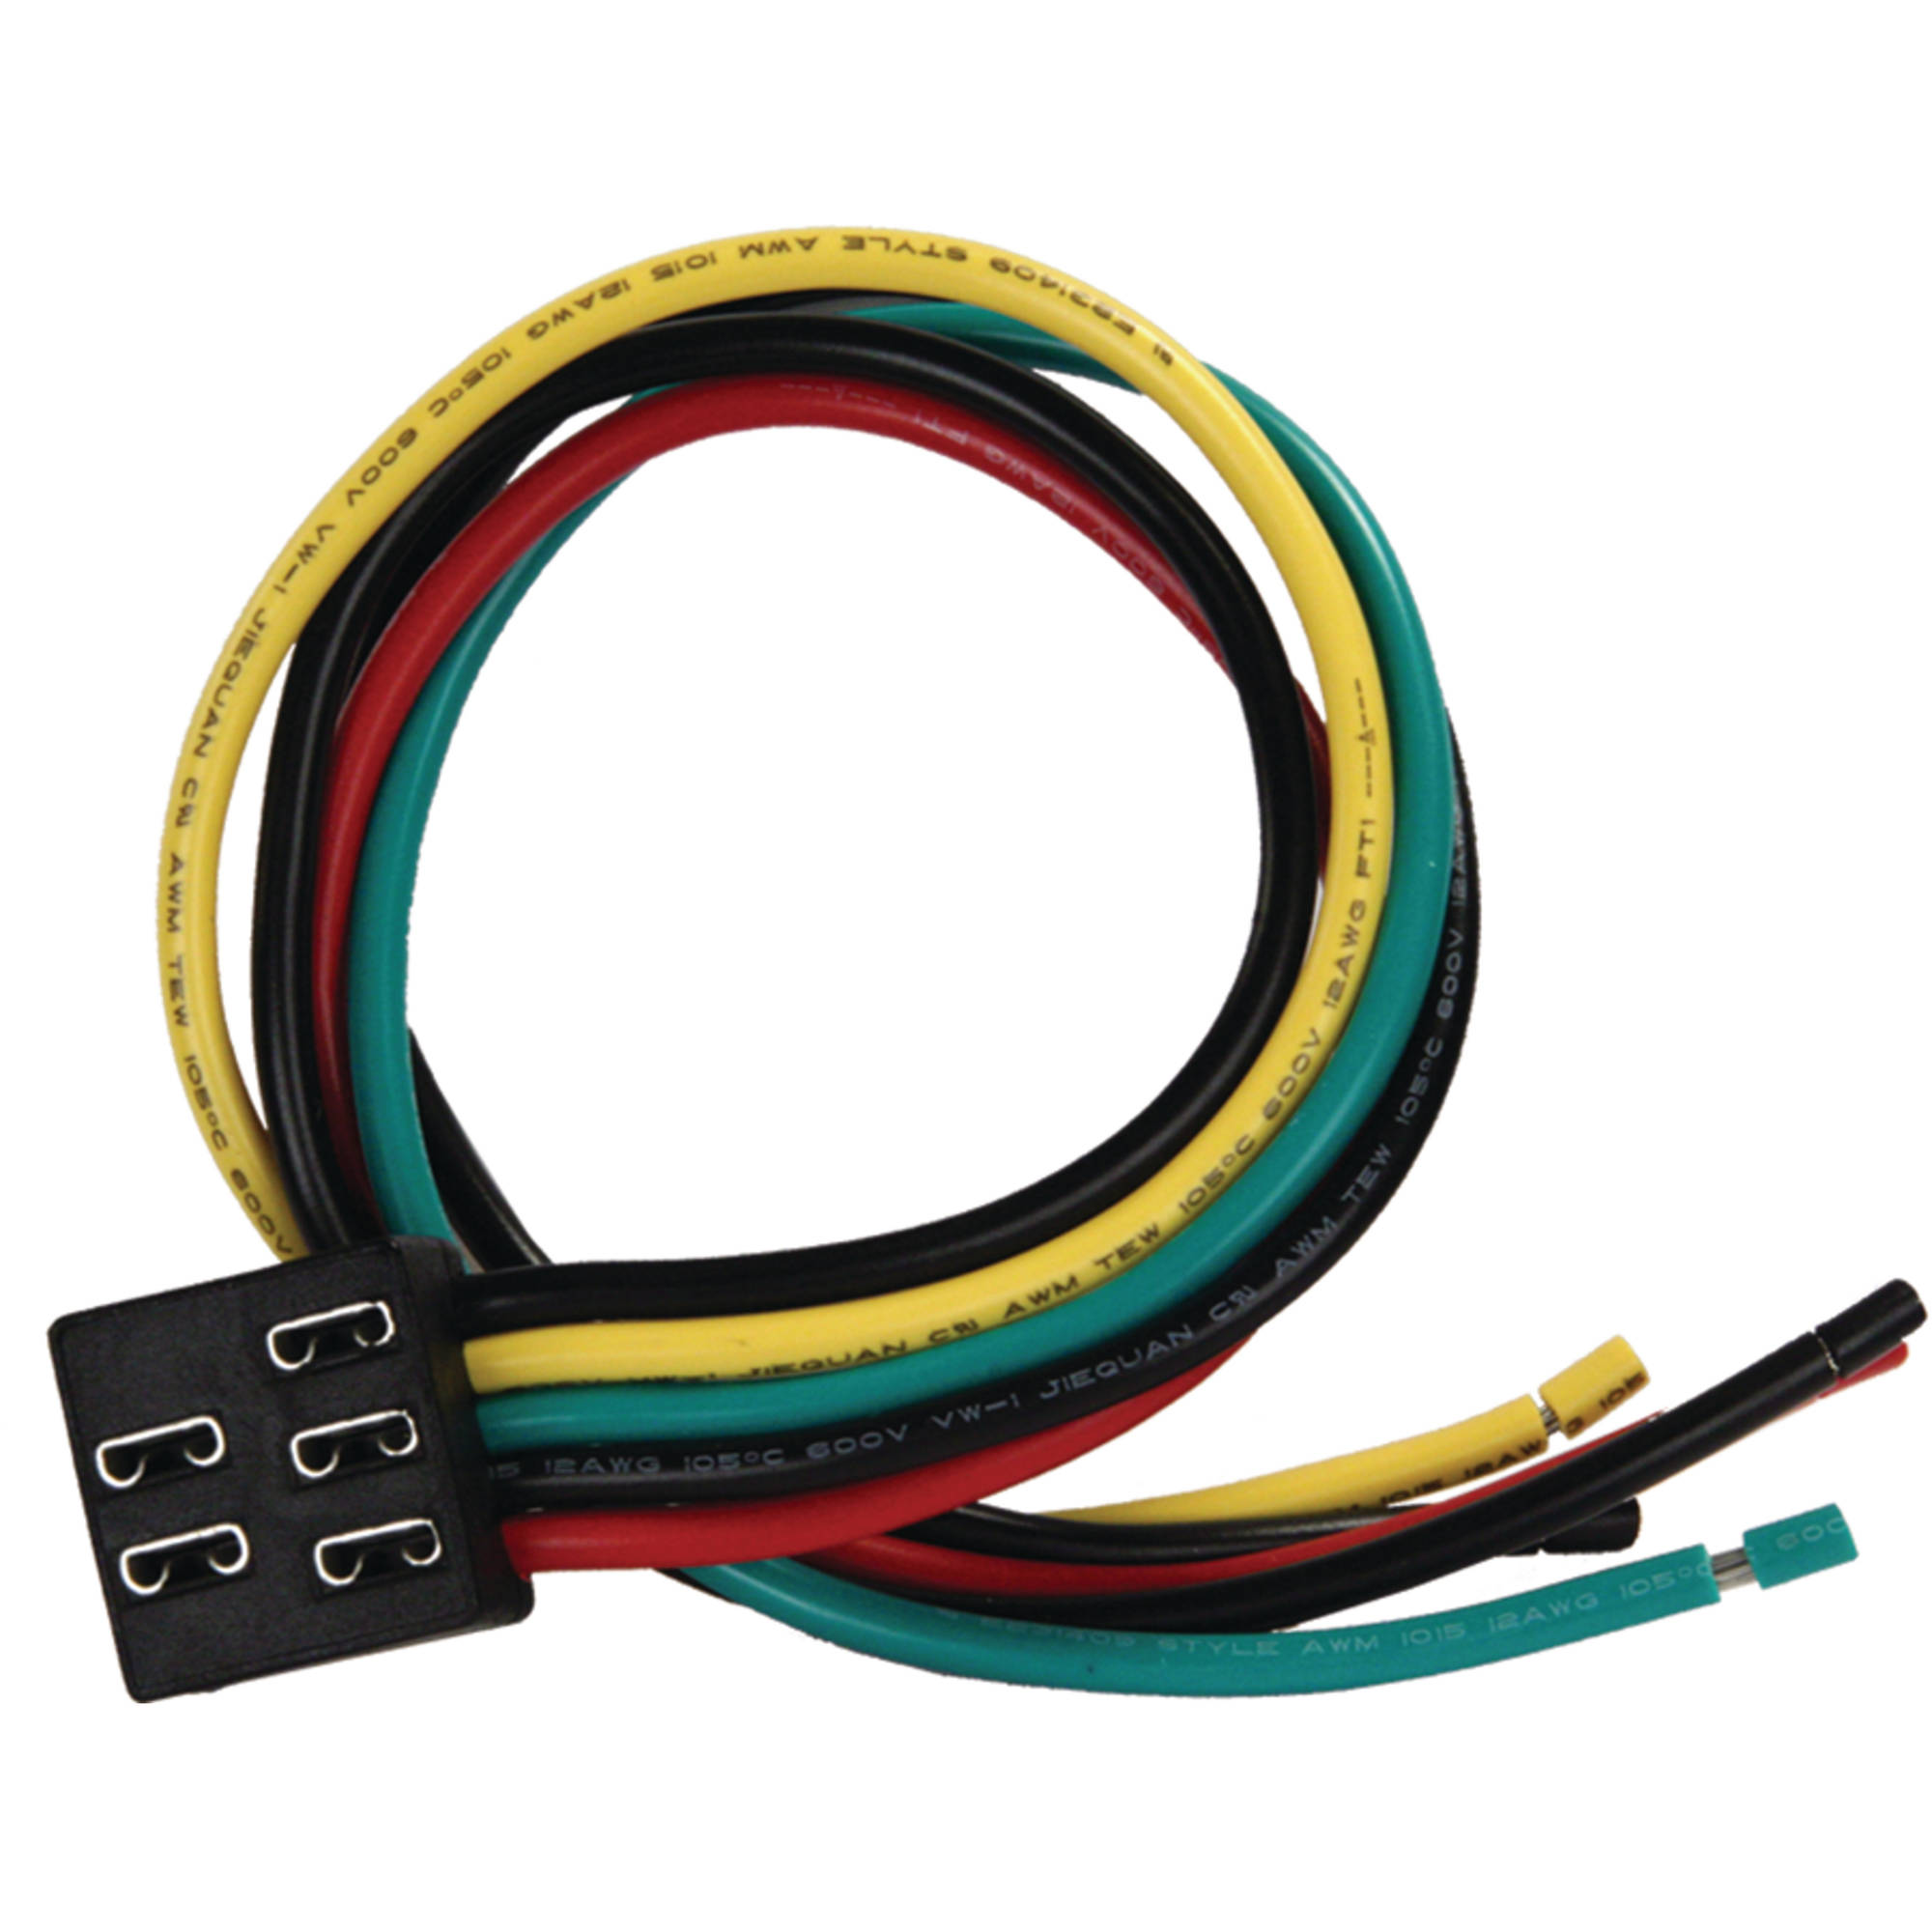 jr products 13061 slide out rv switch wiring harness walmart com rv slide wiring harness [ 2000 x 2000 Pixel ]